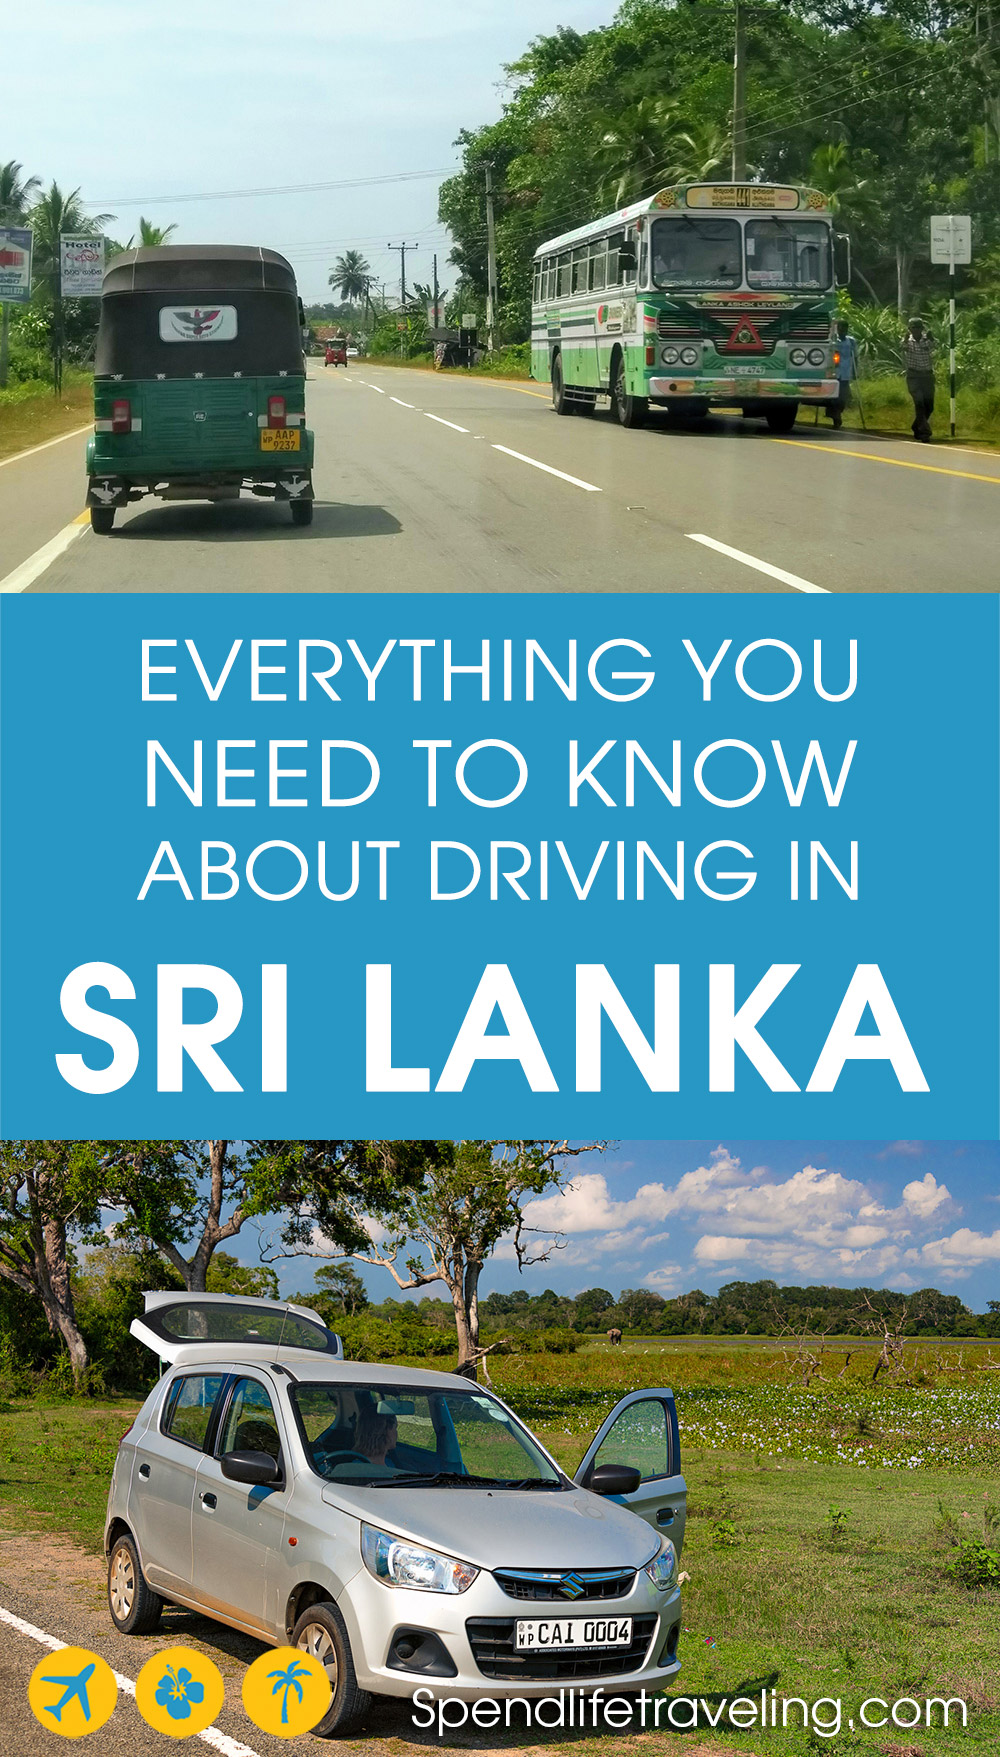 renting a car and driving in Sri Lanka